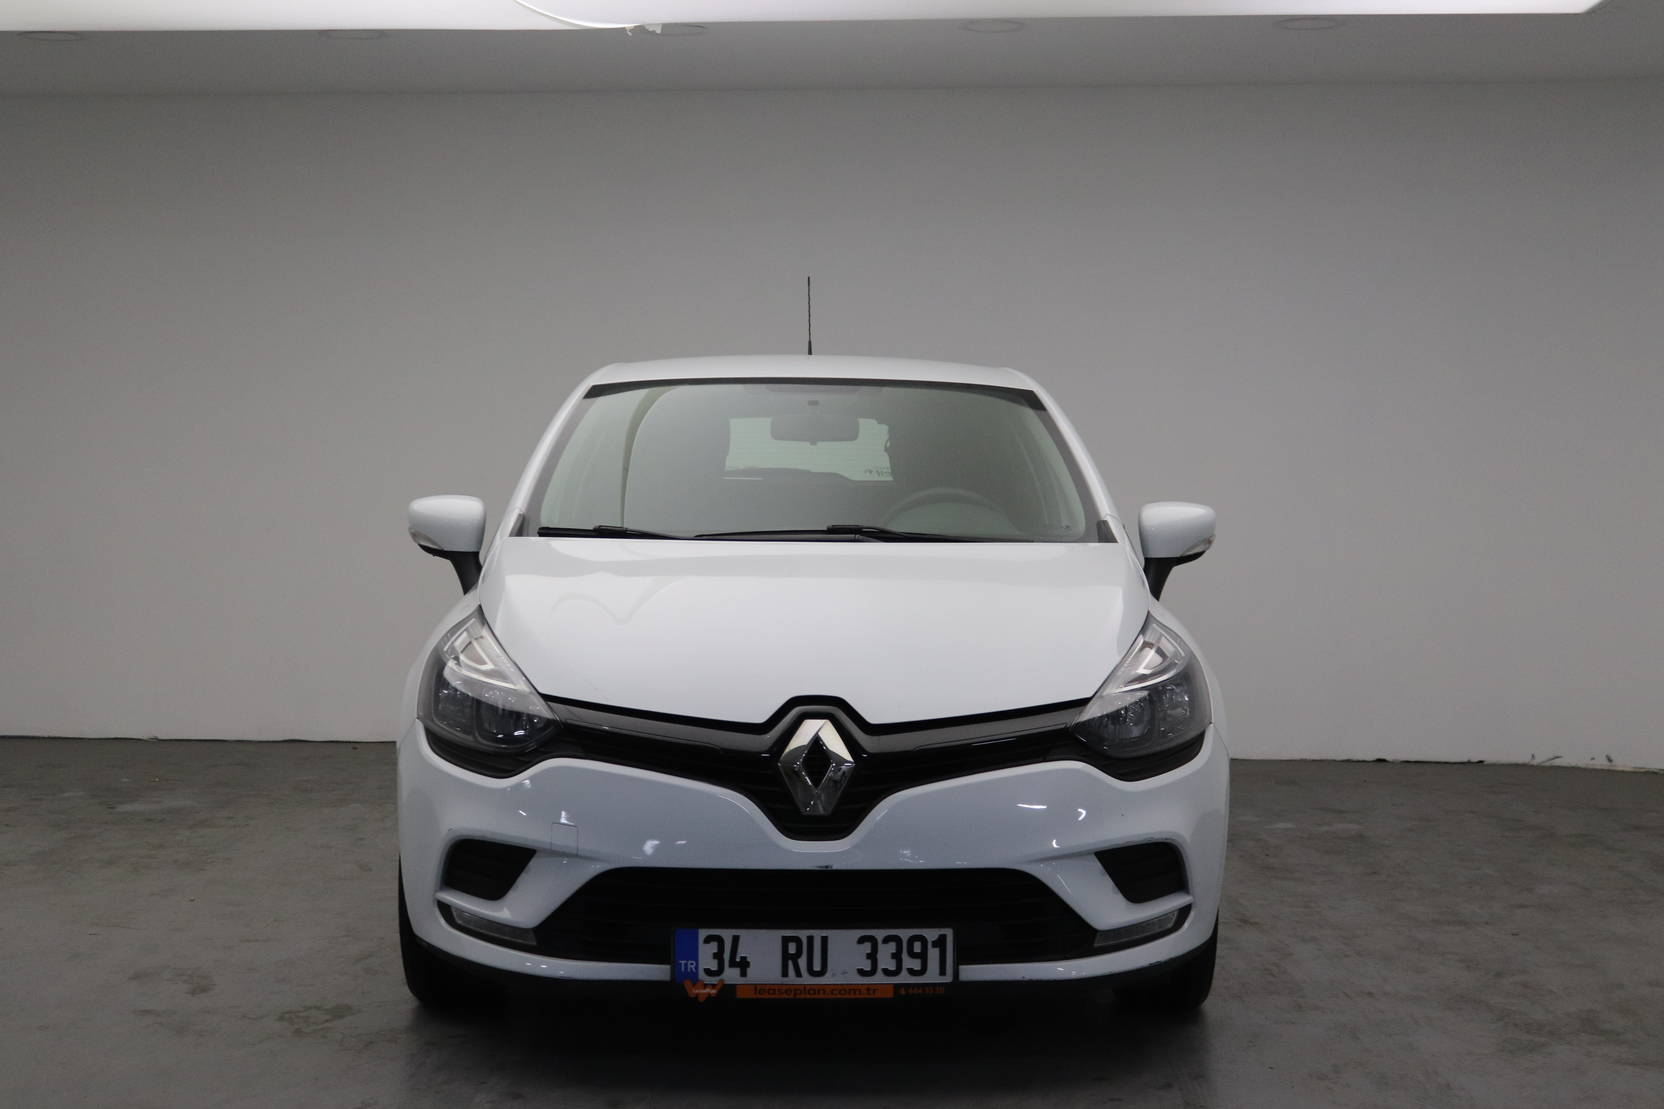 Renault Clio dCi 75 Stop & Start, Joy detail2